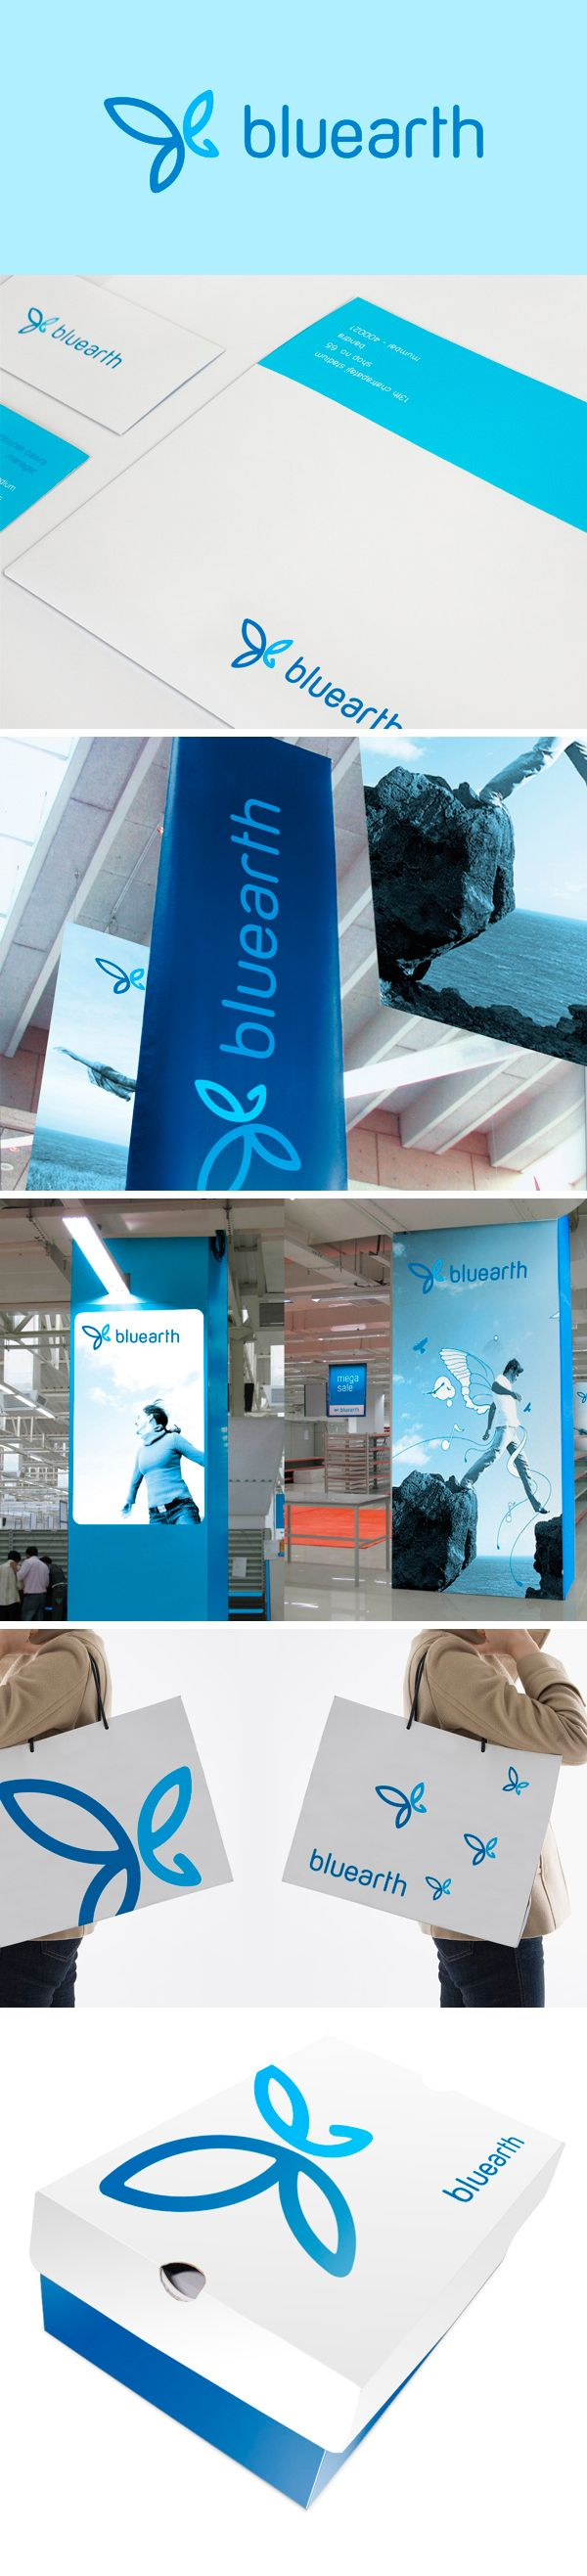 Bluearth #identity #packaging #branding PD